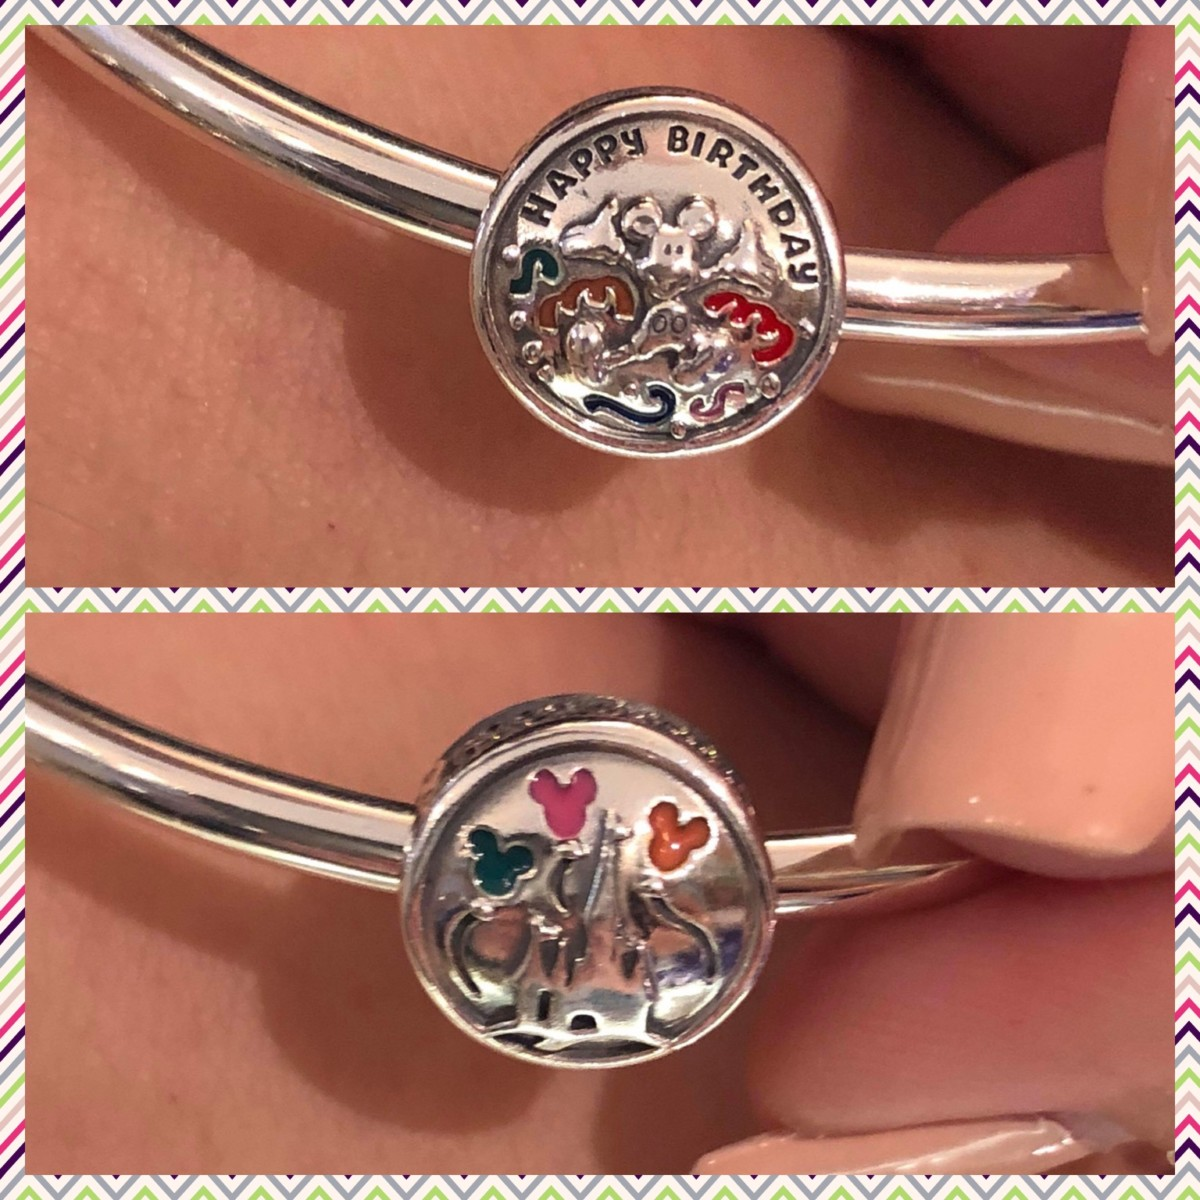 New Disney Pandora Charms Out Today! 2